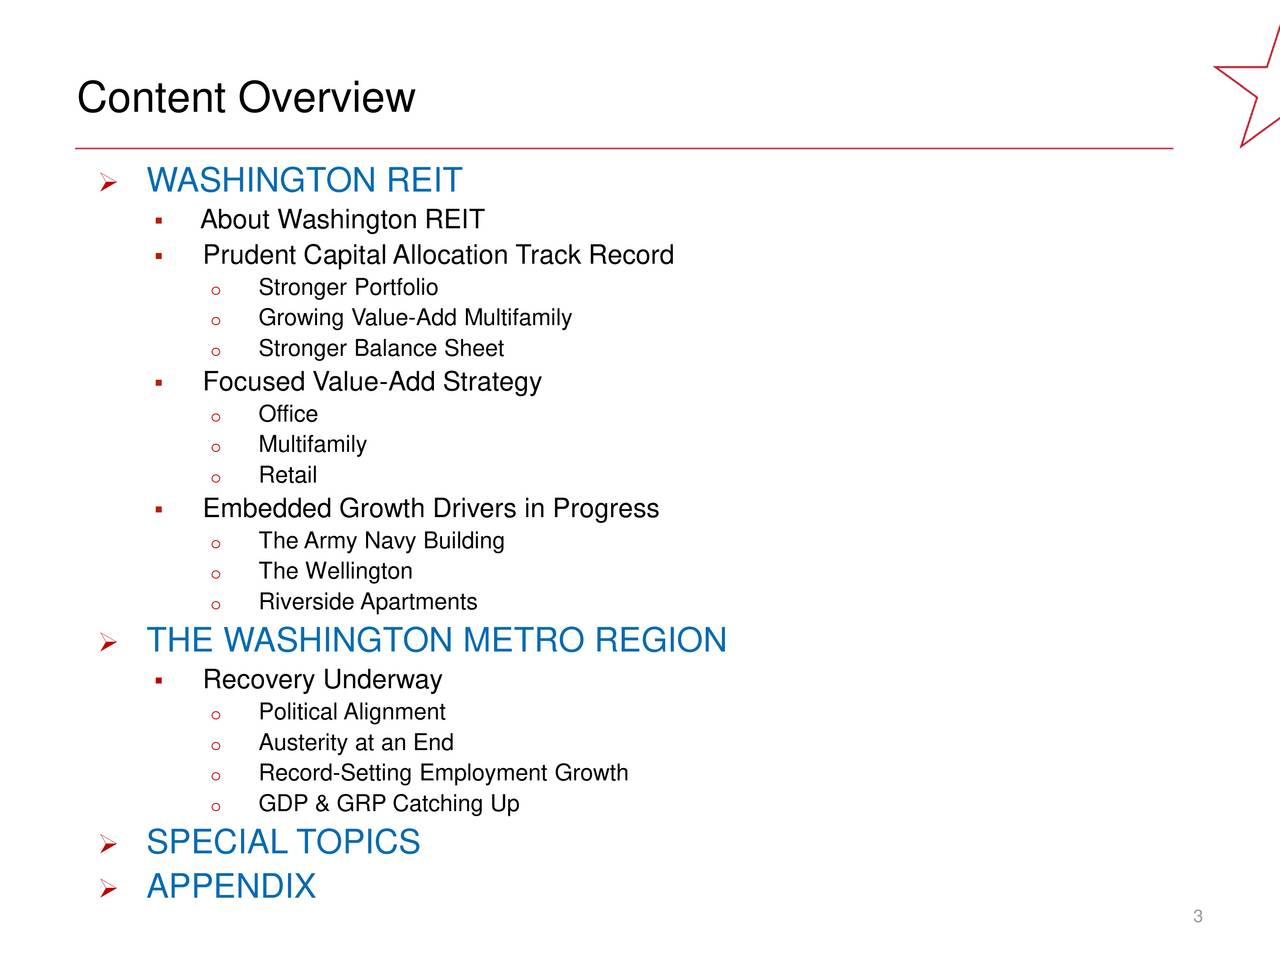 Content Overview 0, 0, 0 WASHINGTON REIT About Washington REIT 190, 30, 45  Prudent Capital Allocation Track Record o Stronger Portfolio o Growing Value-Add Multifamily o Stronger Balance Sheet 99, 100, 102  Focused Value-Add Strategy o Office o Multifamily ACCENT o Retail COLORS Embedded Growth Drivers in Progress o The Army Navy Building o The Wellington o Riverside Apartments 114, 7, 17 THE WASHINGTON METRO REGION Recovery Underway o Political Alignment 232, 203, 31 o Austerity at an End o Record-Setting Employment Growth o GDP & GRP Catching Up 13, 80, 114 SPECIAL TOPICS APPENDIX 9, 107, 178